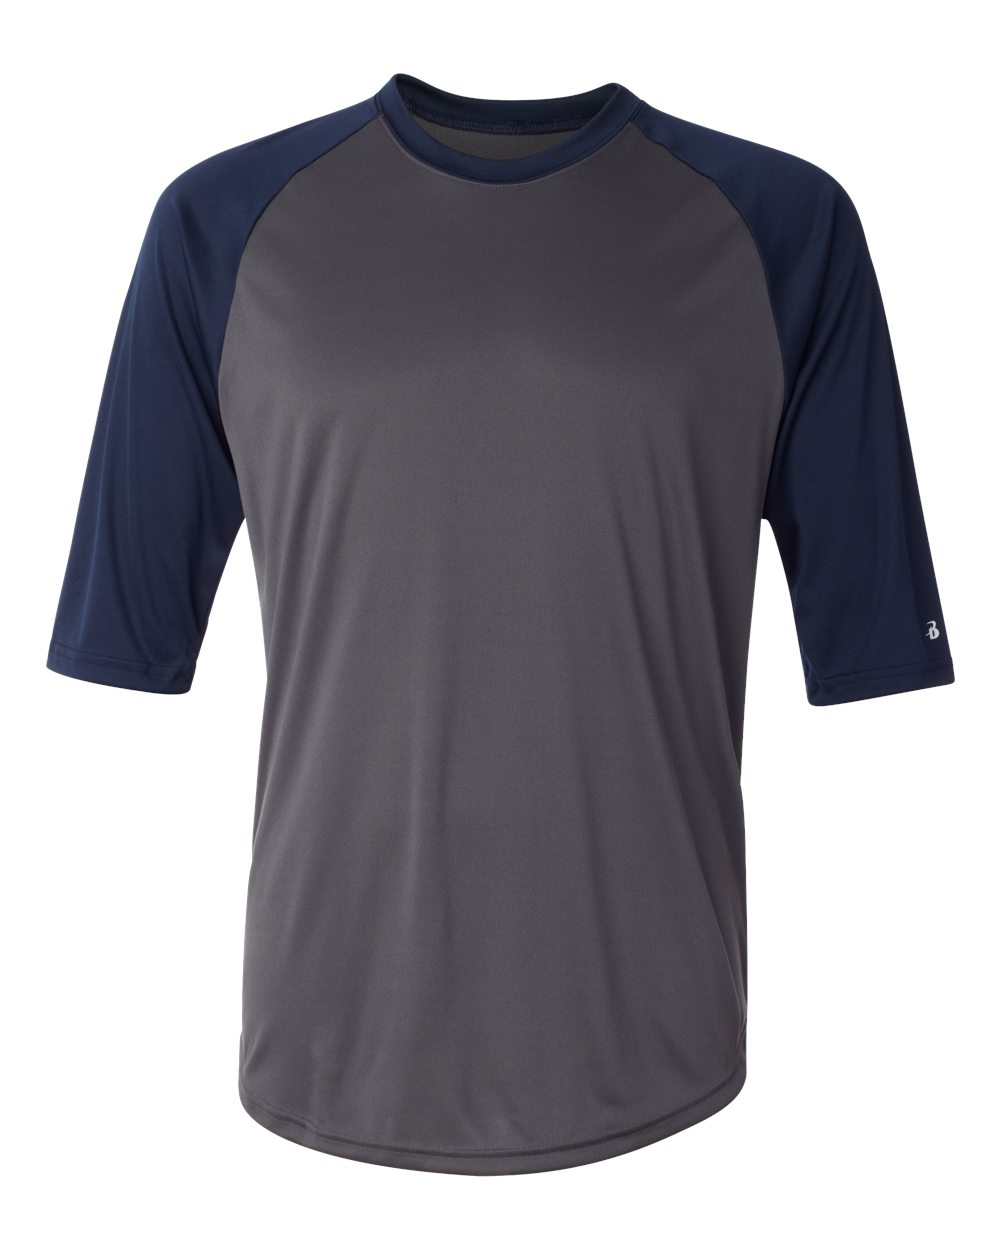 Badger 4133 Moisture Wicking Performance Raglan 34 Sleeve